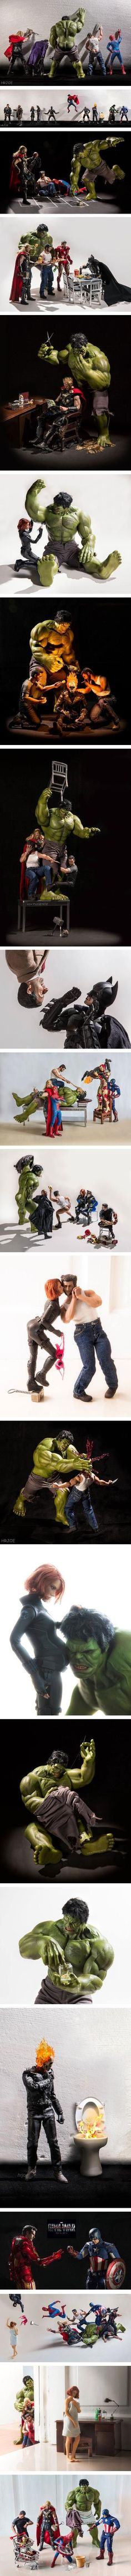 The Secret Life of the Superheroes. - superhero toys photography by Edy Hardjo, an Indonesian. | Nerd | Pinterest | Secret Life, The Secret and The Superhero